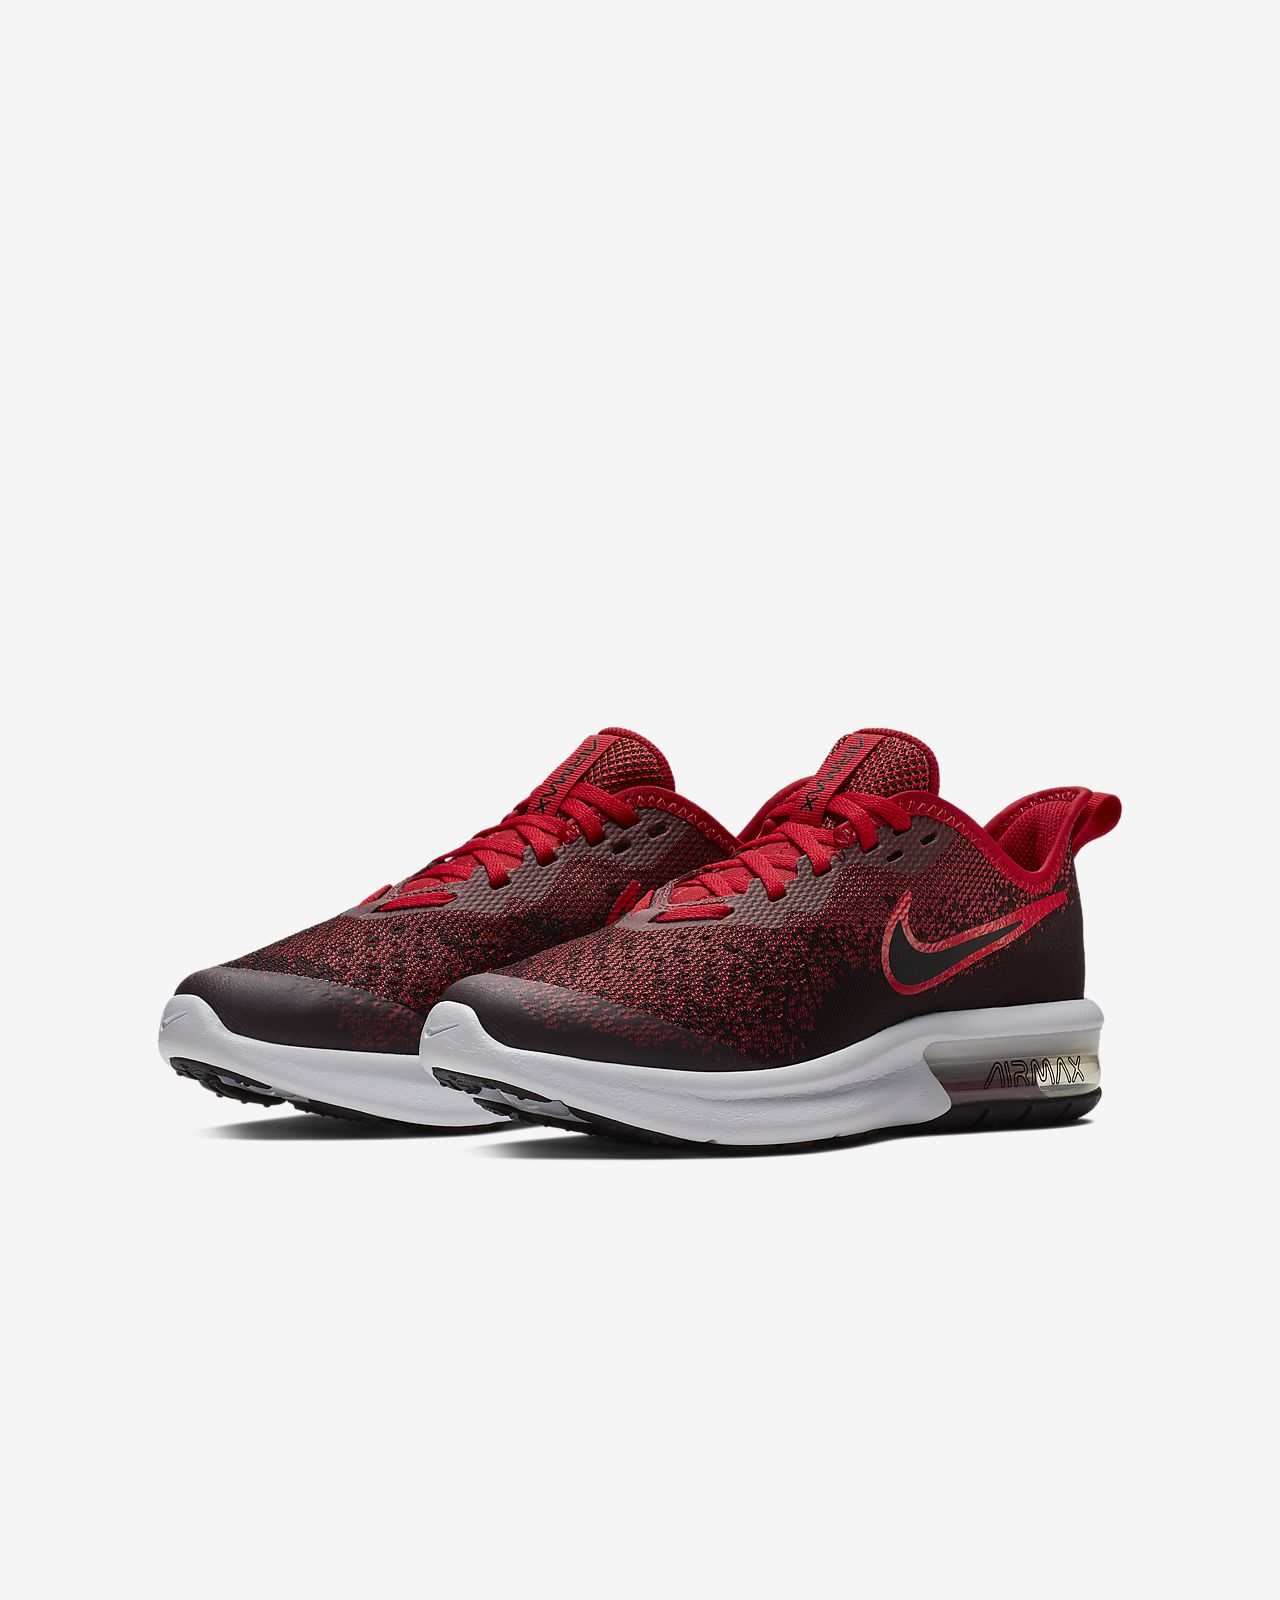 half off ee740 2e644 ... Nike Air Max Sequent 4 Older Kids  Shoe